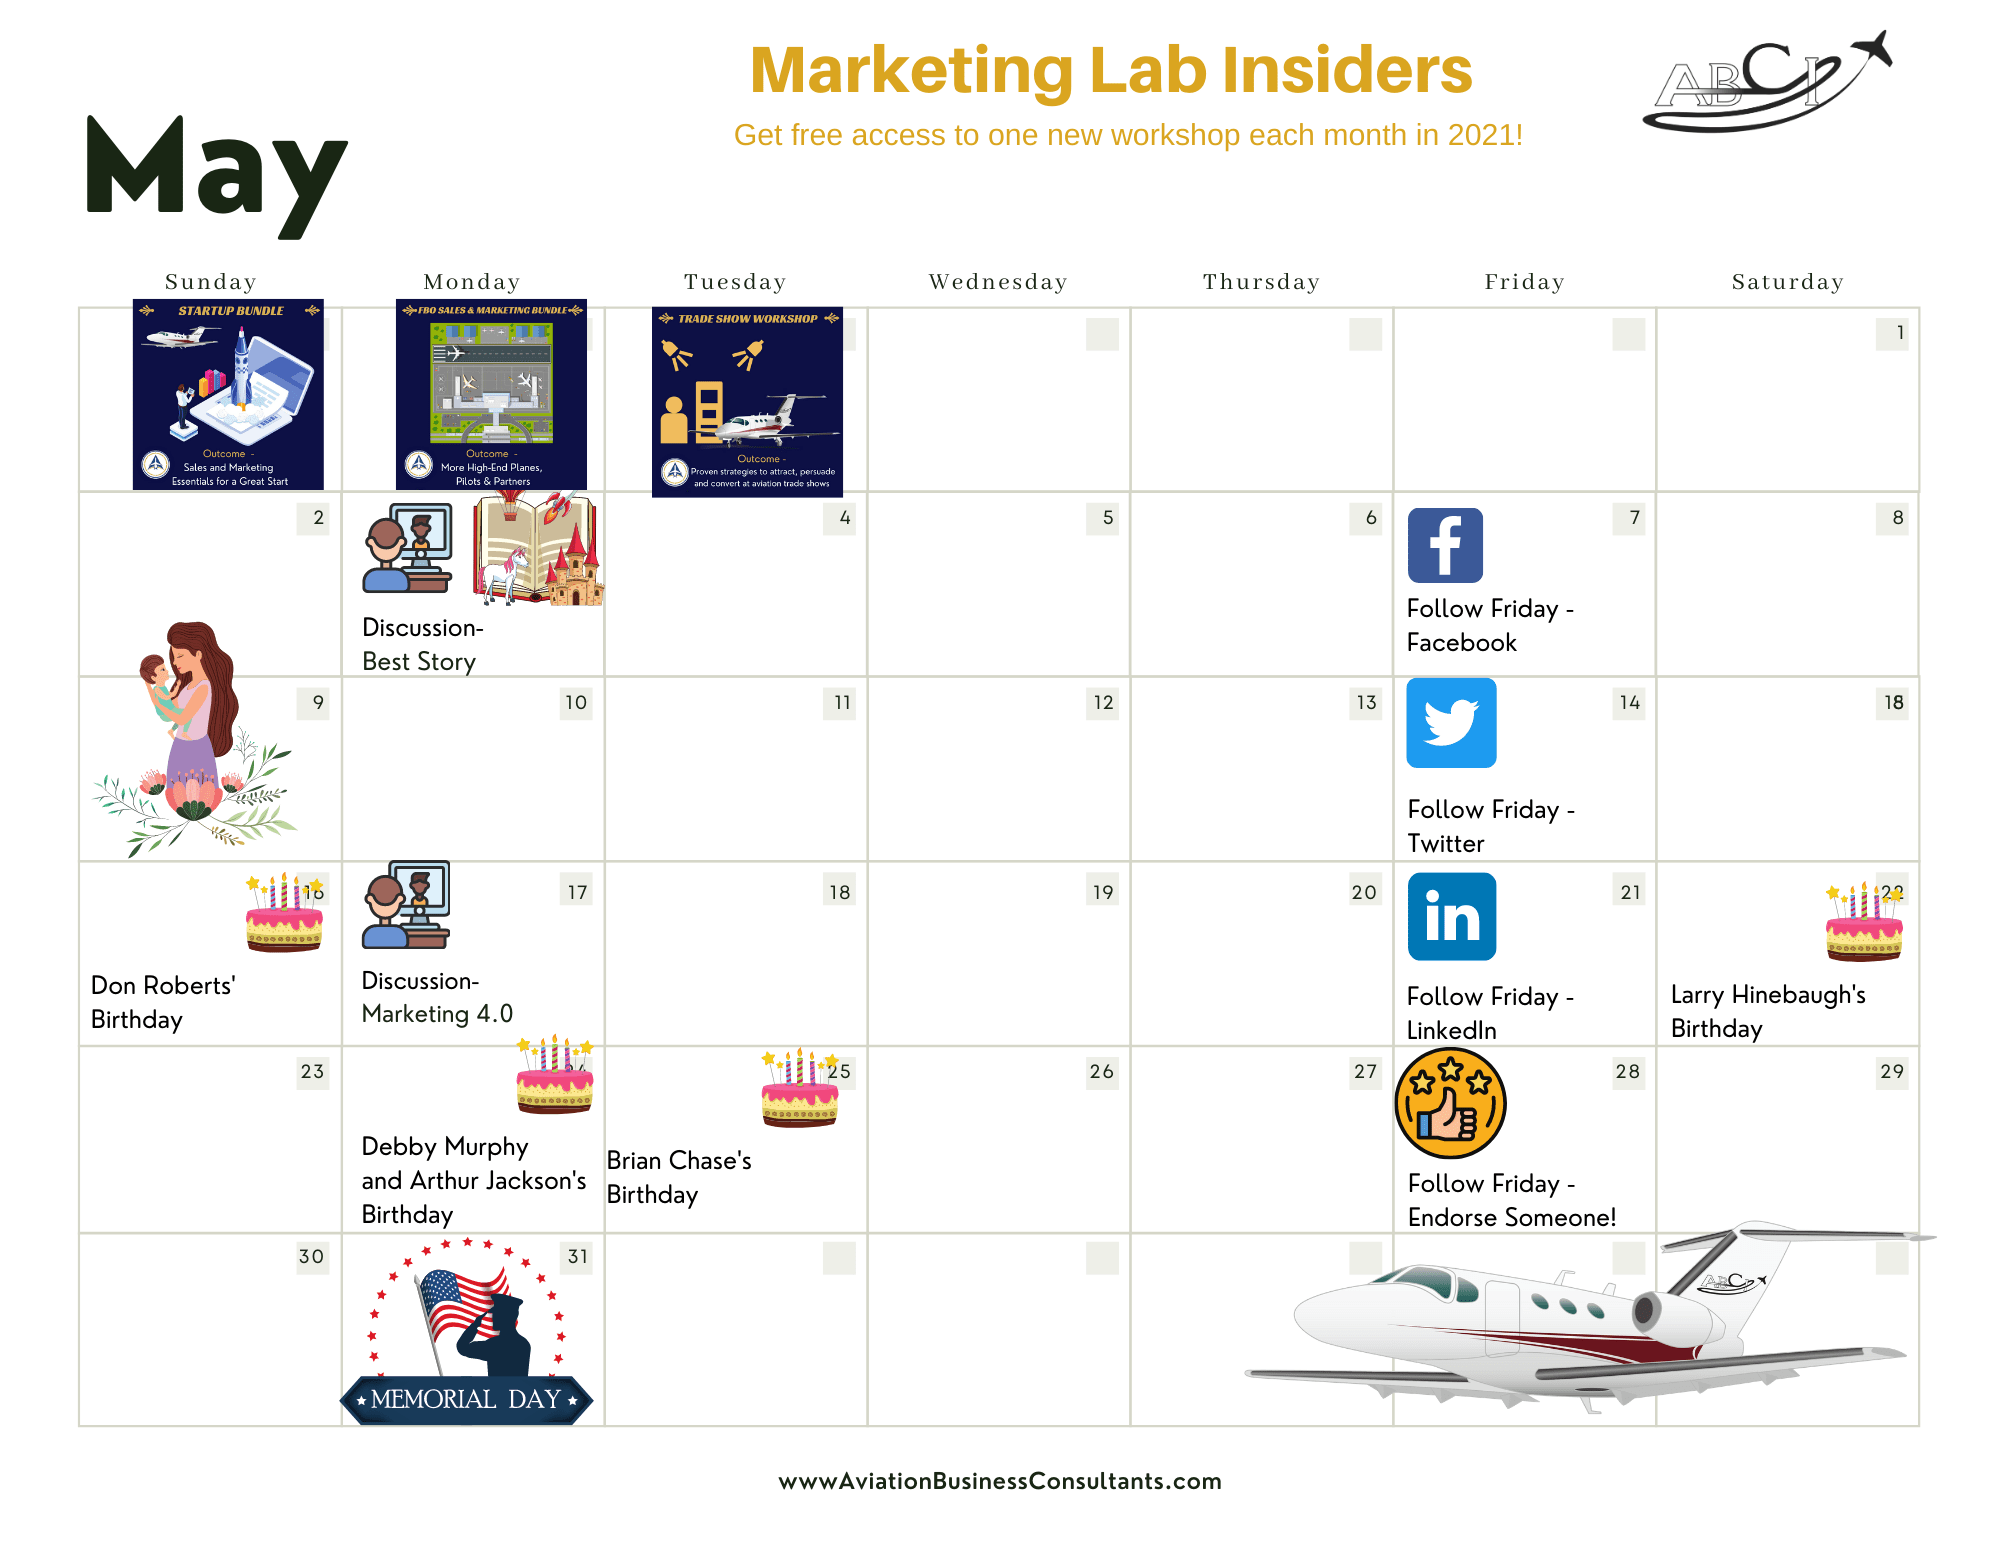 Aviation Marketing Events in May 2021